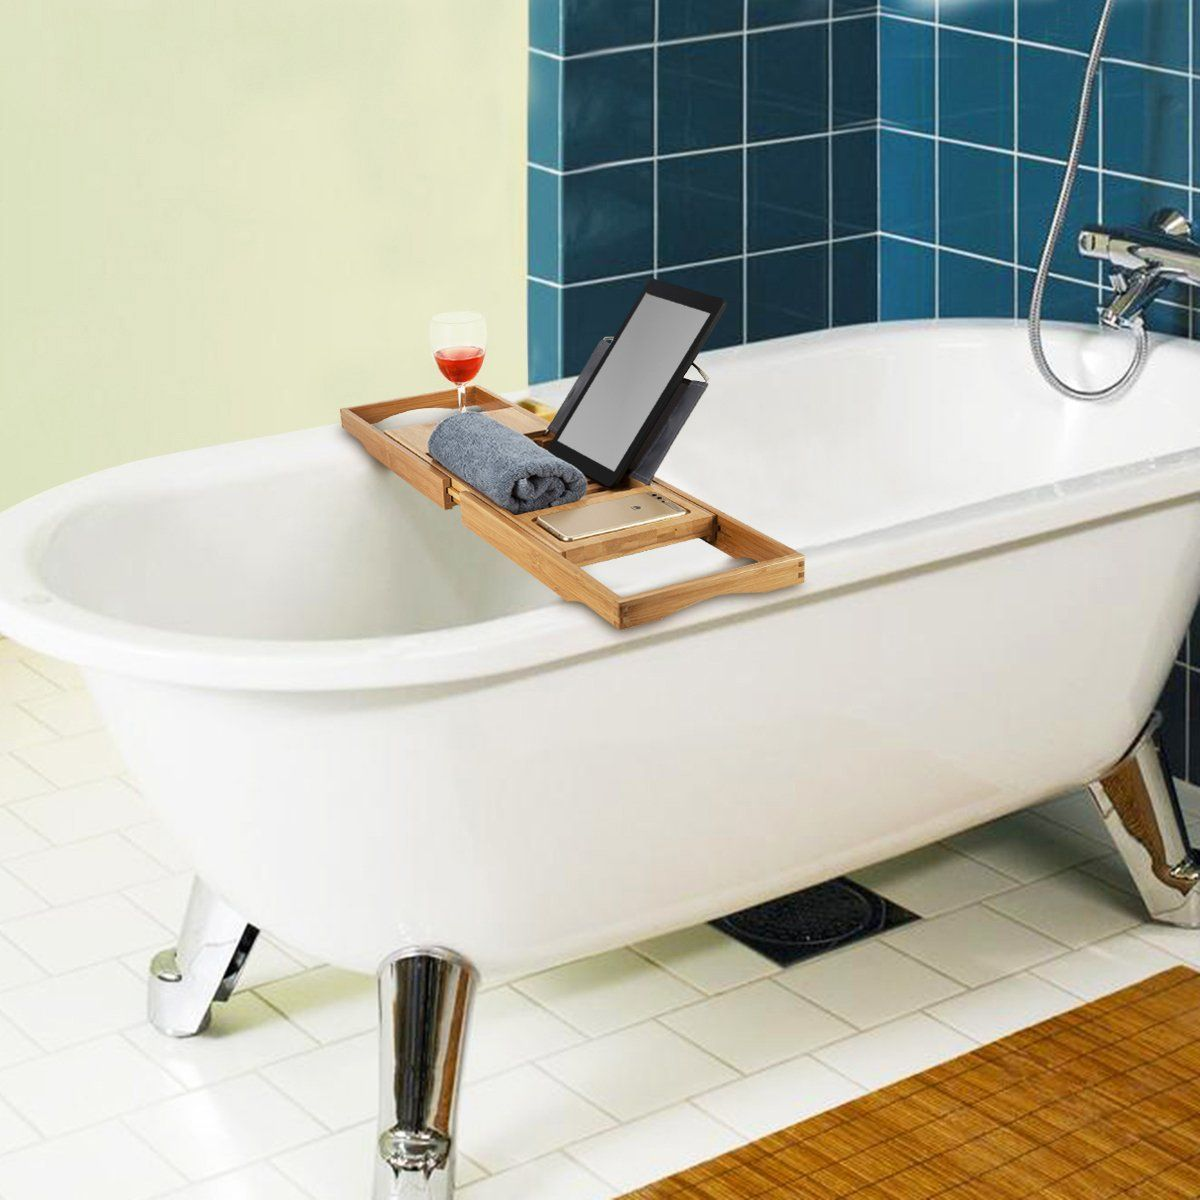 WITASM Bamboo Bath Caddy Bathtub Tray with Book Tablet iPad Phone ...